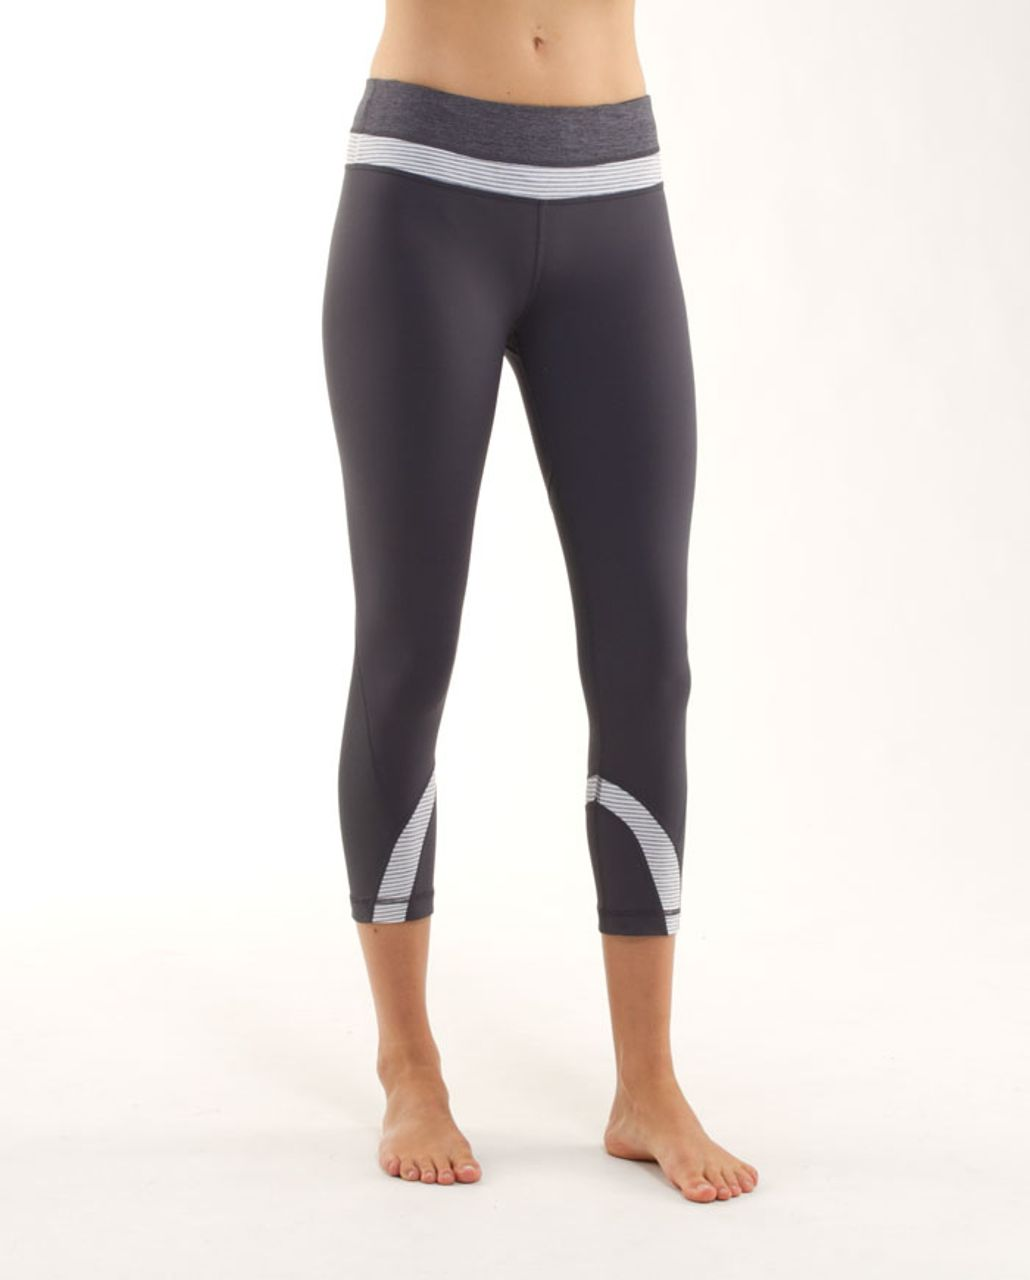 Lululemon Run: Inspire Crop II - Coal / White Heathered Blurred Grey Classic Stripe